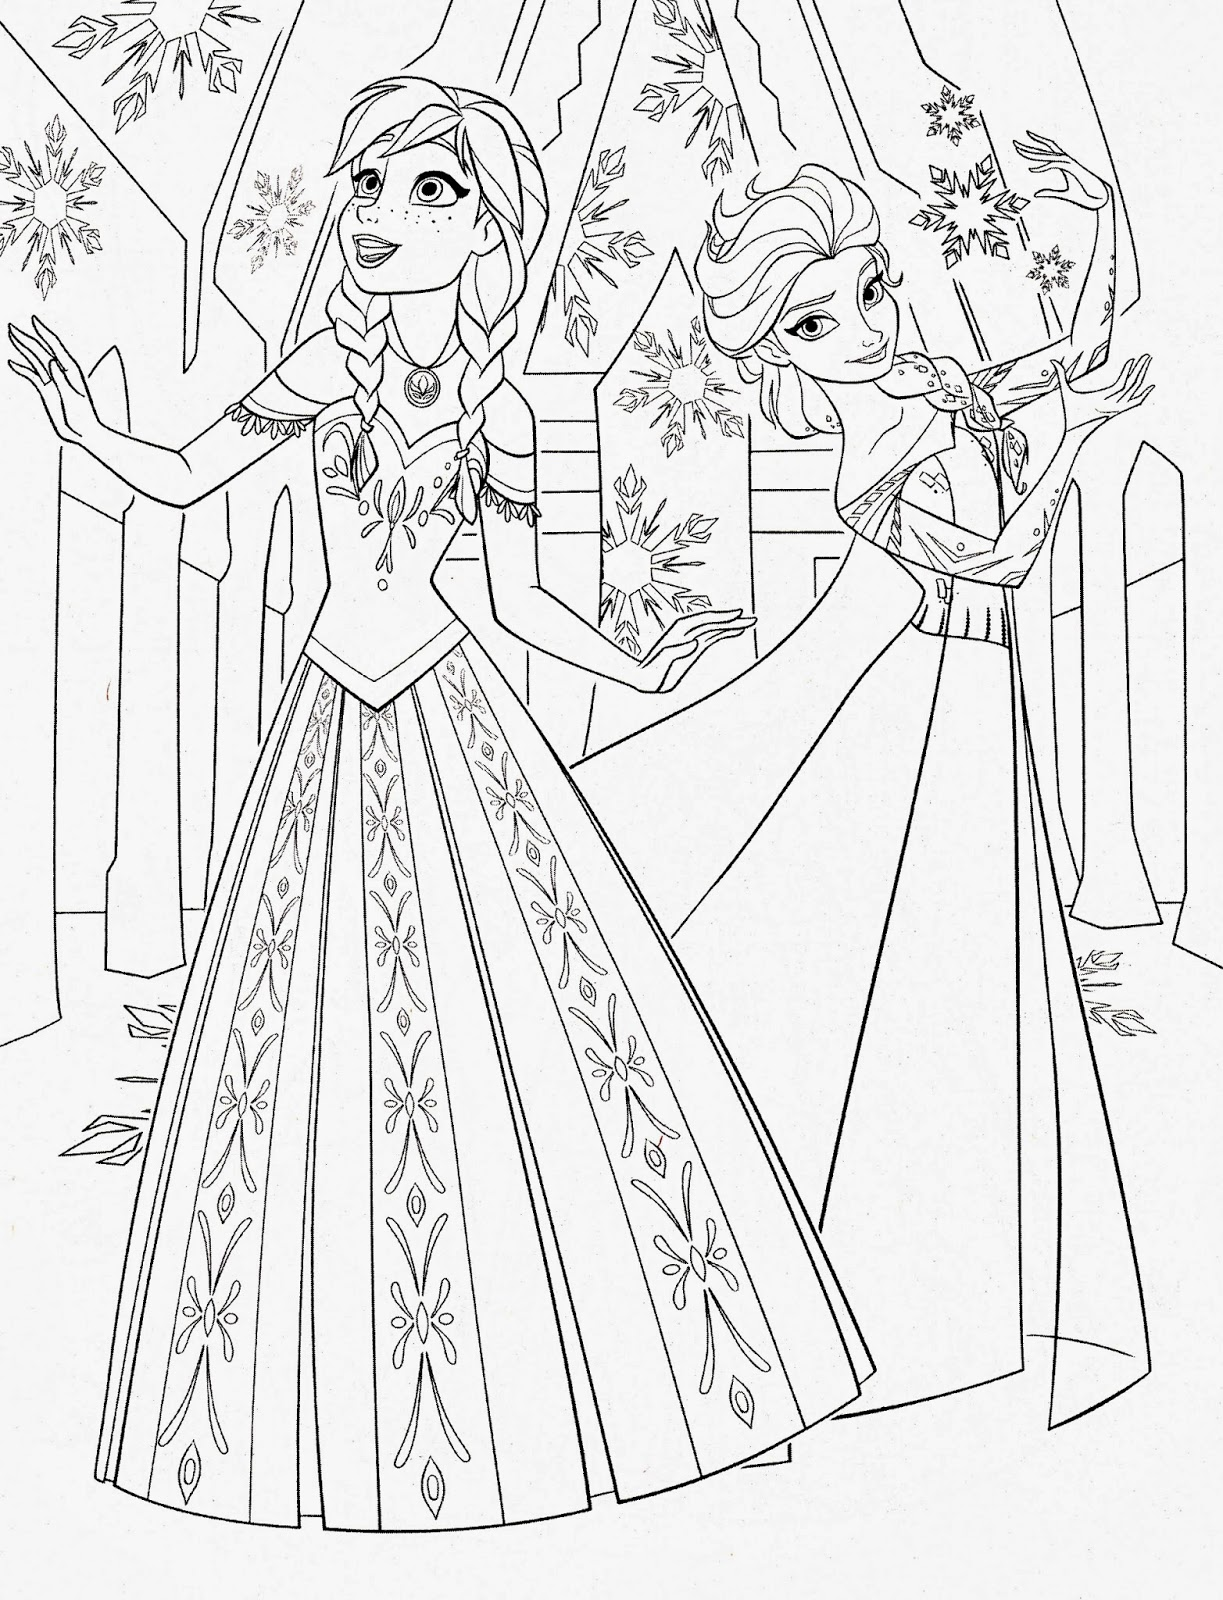 frozen colouring pages frozen snow troll coloring page wecoloringpagecom colouring frozen pages